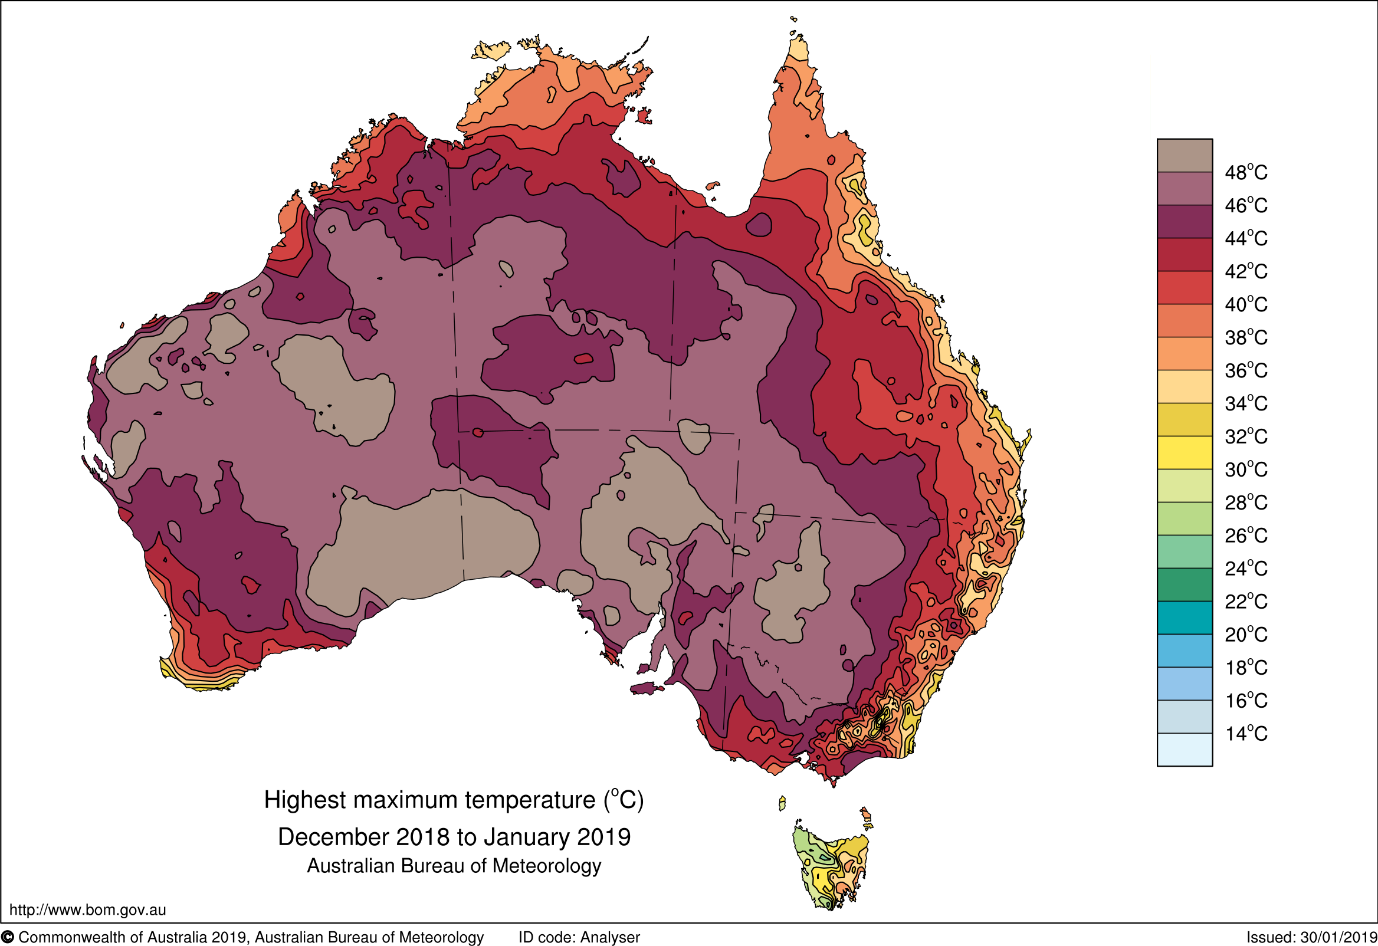 Map of Australia showing December–January highest maximum temperatures. The great majority of the map is brown or purple, indicating 44–48 °C, with most of the rest of the country showing as red or orange (36 °C to 42 °C). Only small areas of the east coast, Tasmania and southwest WA were below that.